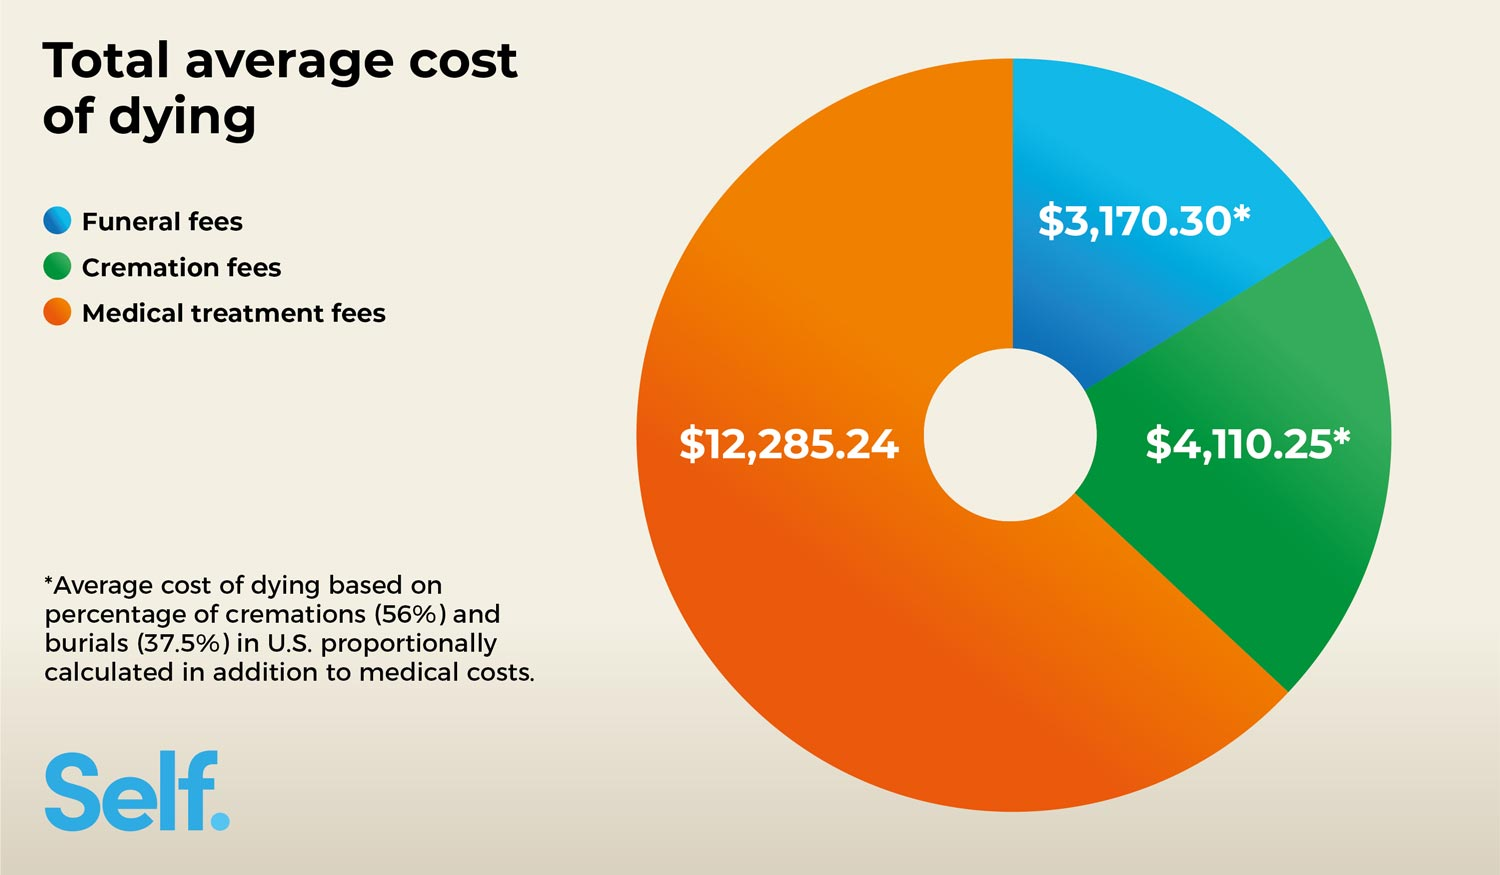 cost-of-dying-breakdown-average-american